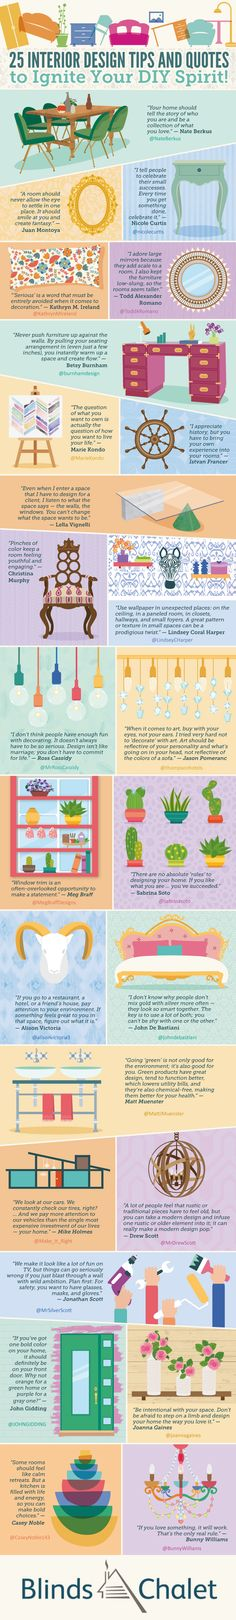 25 Interior Design Tips and Quotes to Ignite Your DIY Spirit #Infographic #InteriorDesign #Quotes